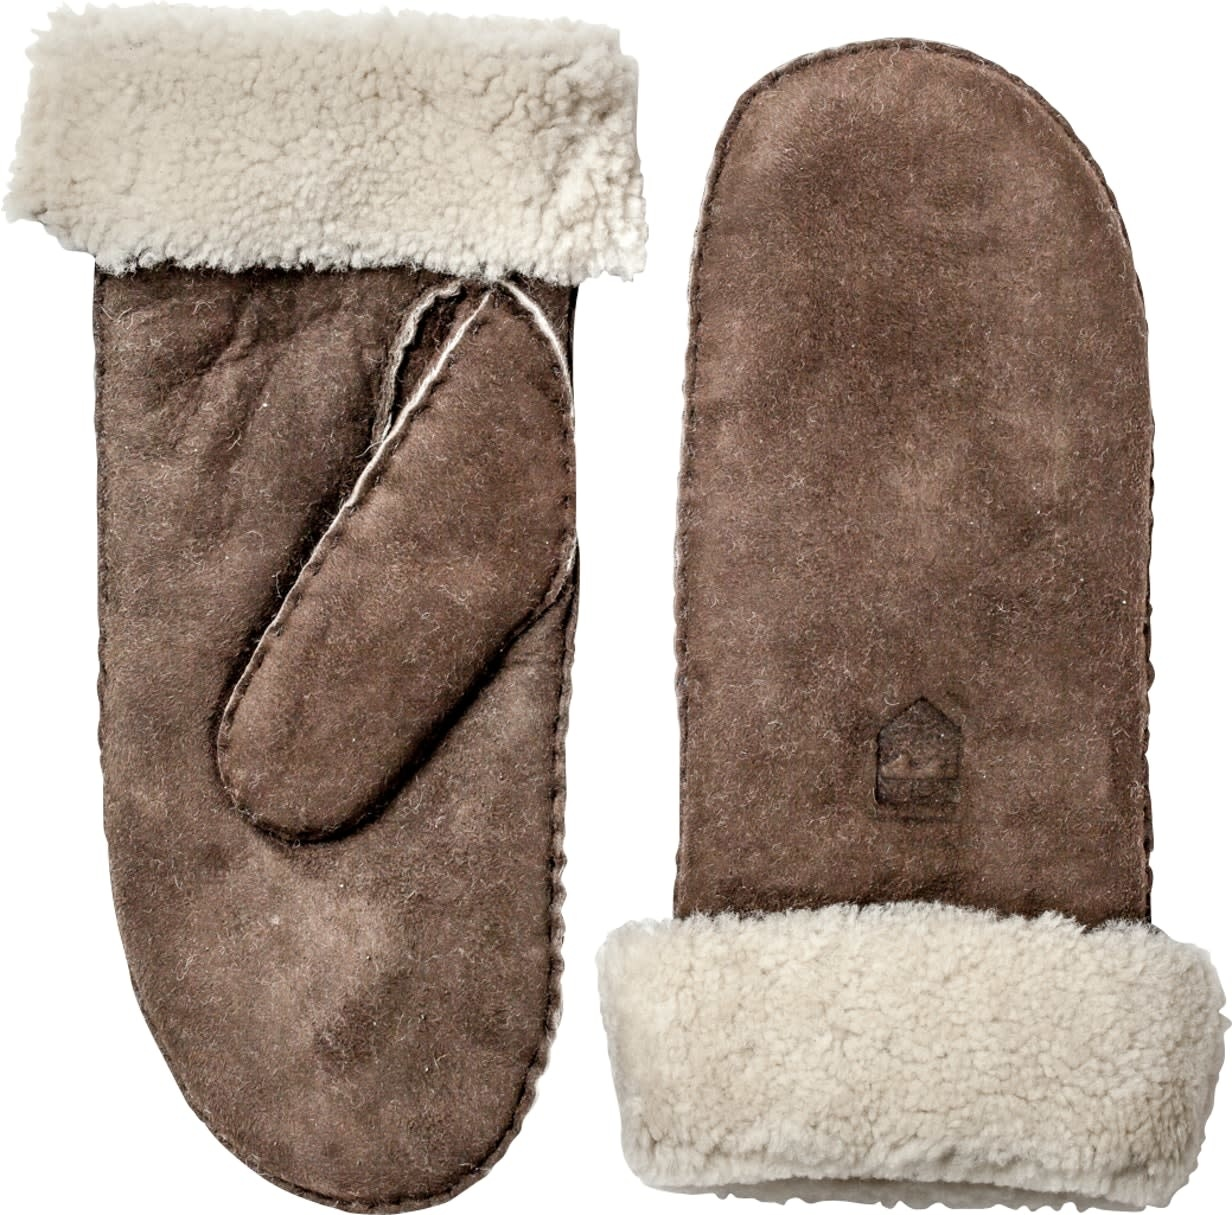 Sheepskin Leather Mitt Espresso Brown-1